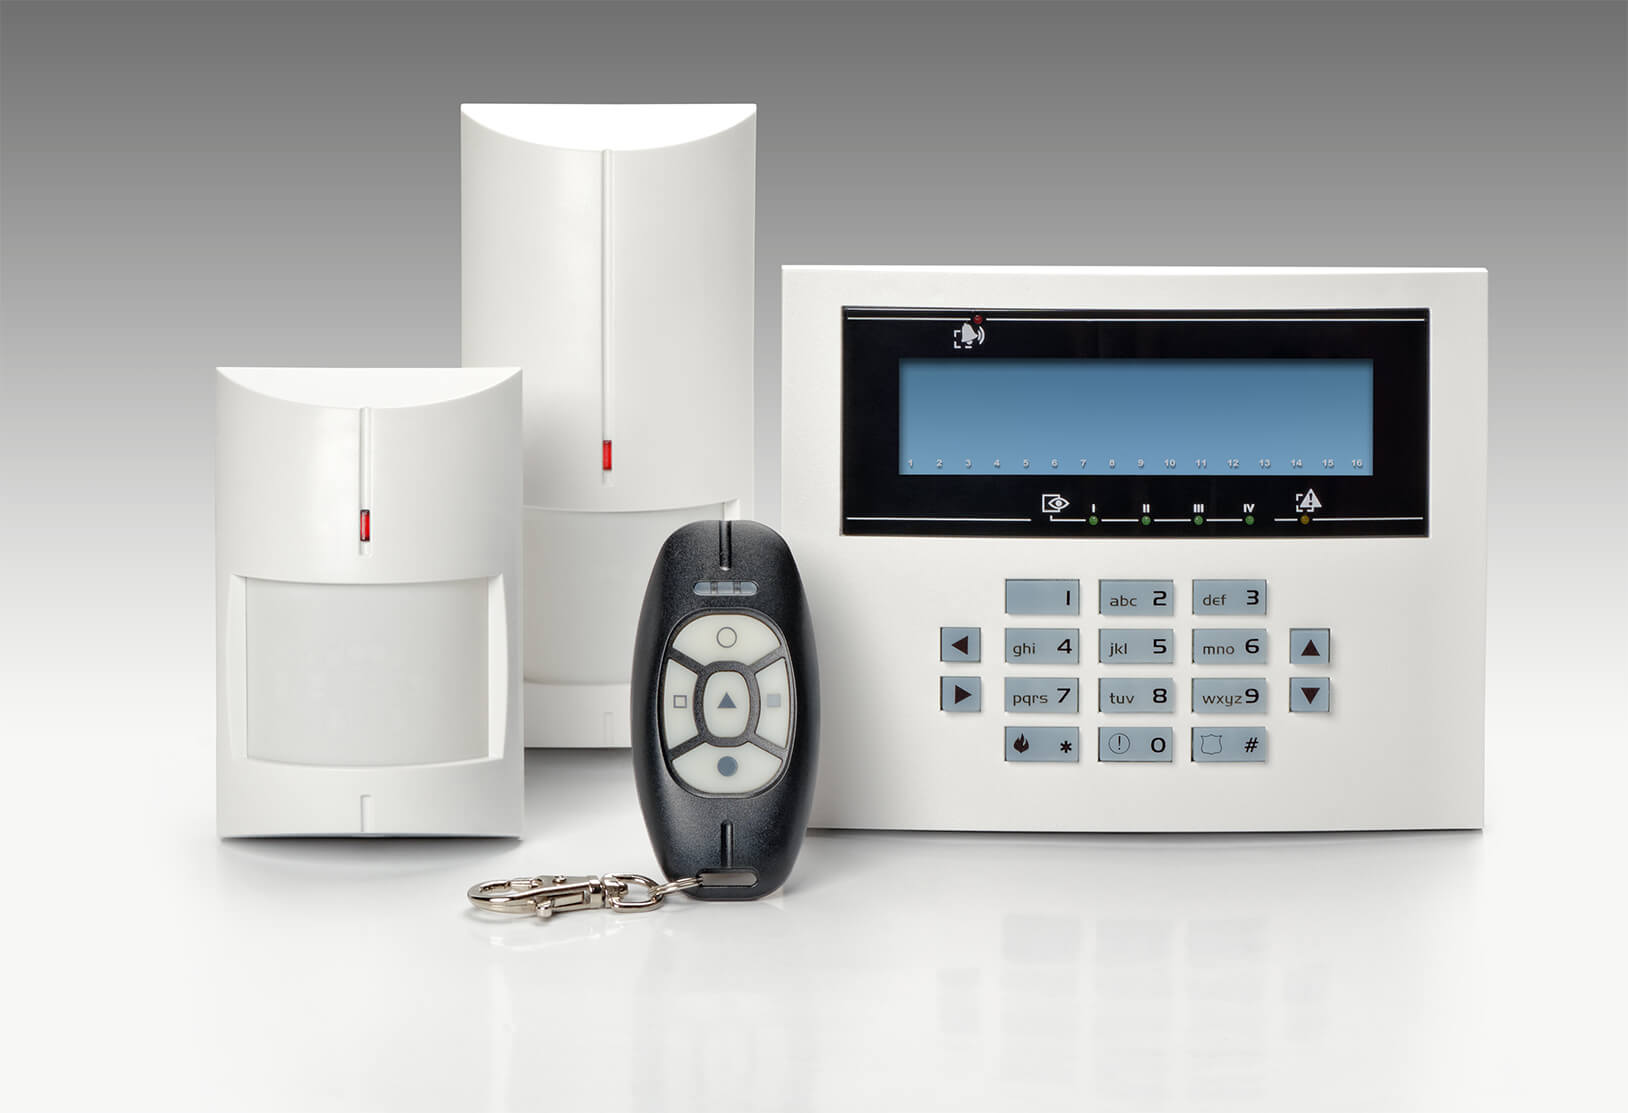 Commercial Burglar Alarms For Business in Hornsey N6  - Local Hornsey N6 burglar alarm company.Call 02078872244 - Dedicated to Safety & Security. Companies, shops and homes ..